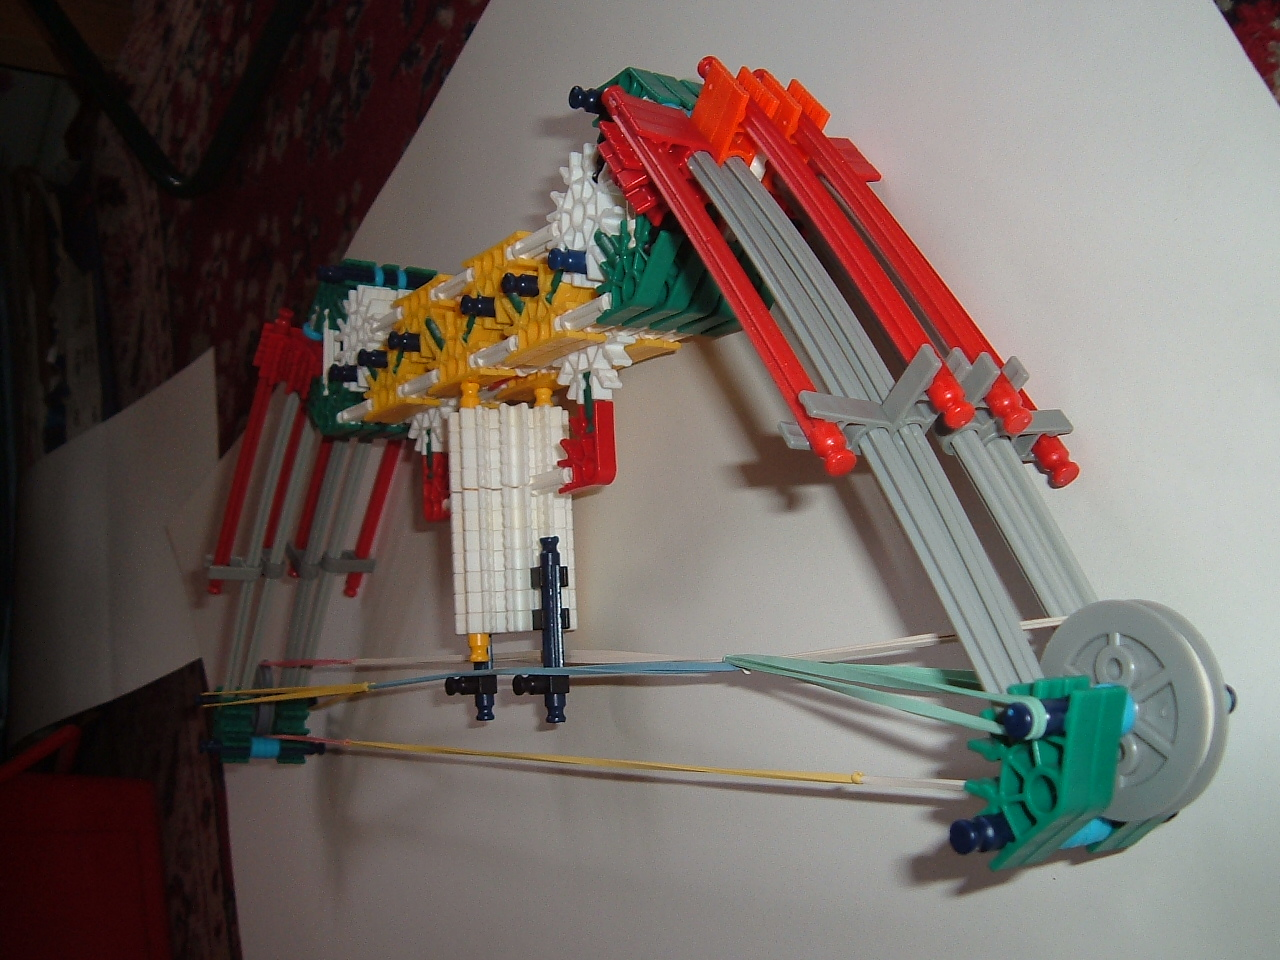 plasmaspy's knex compound bow